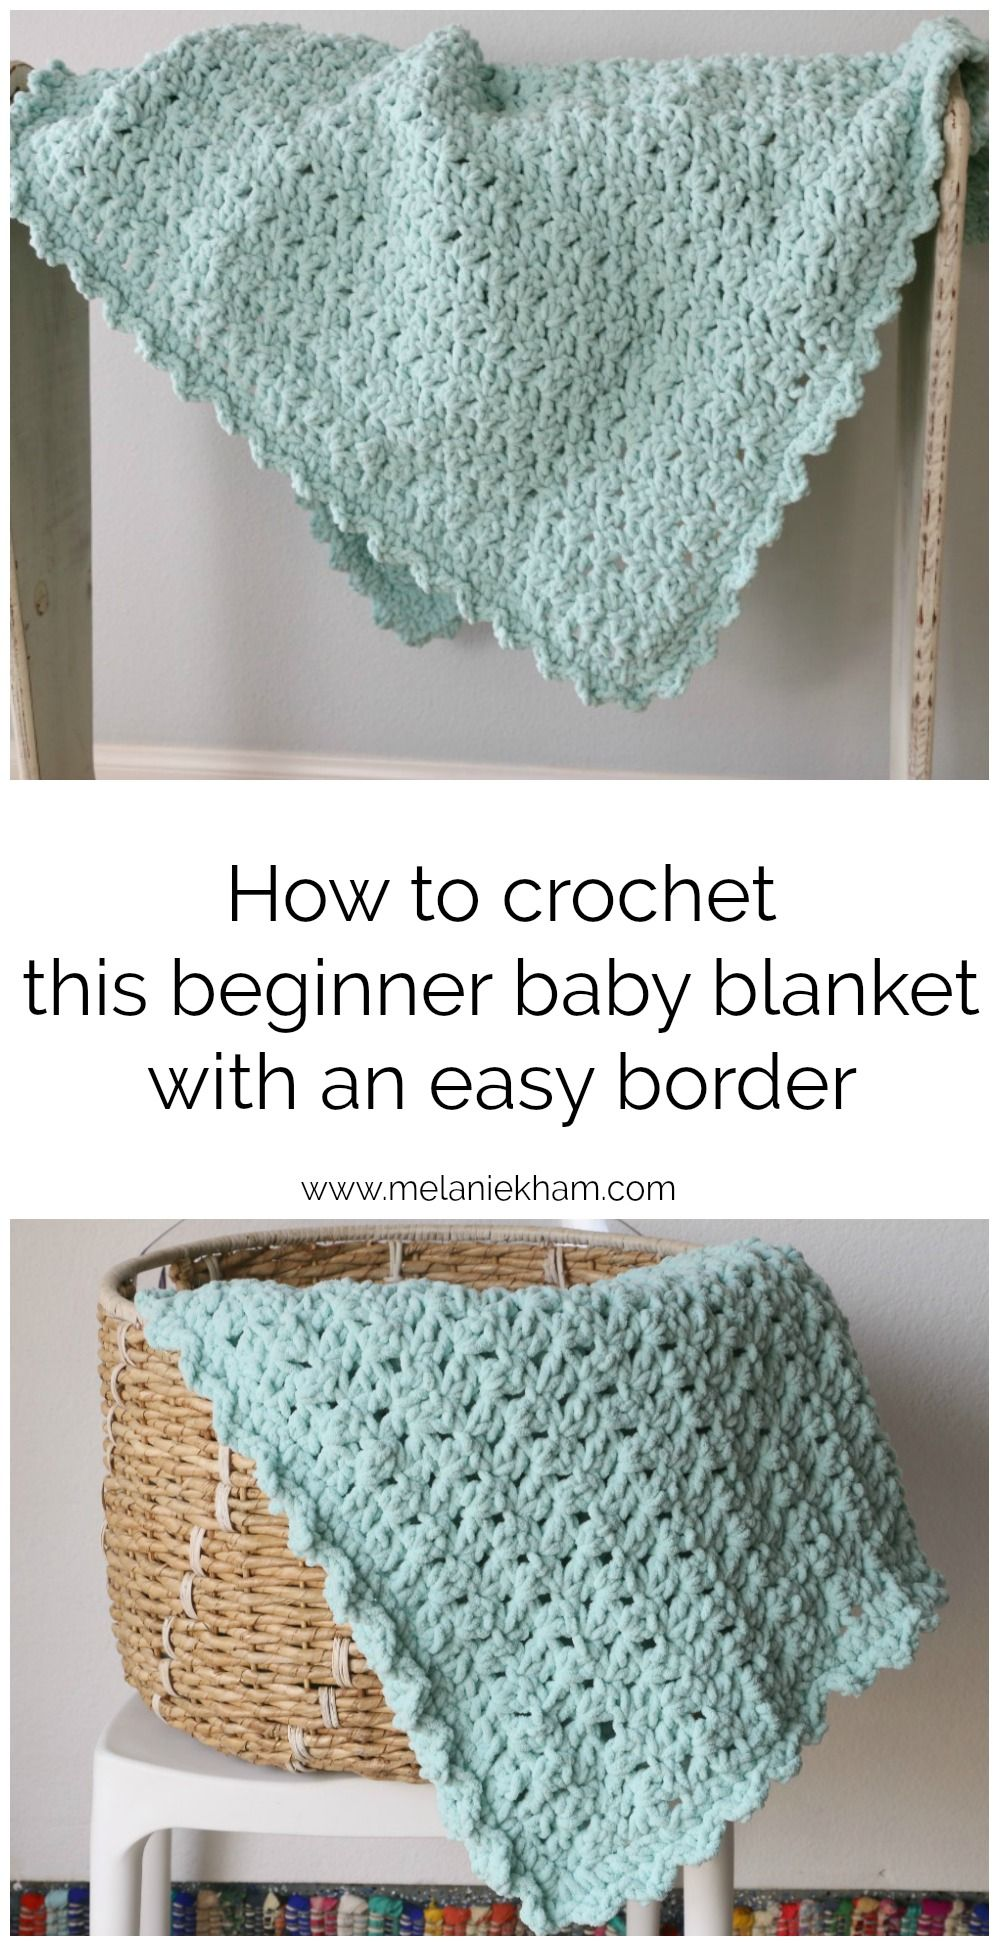 How to crochet this beginner baby blanket with simple border using ...